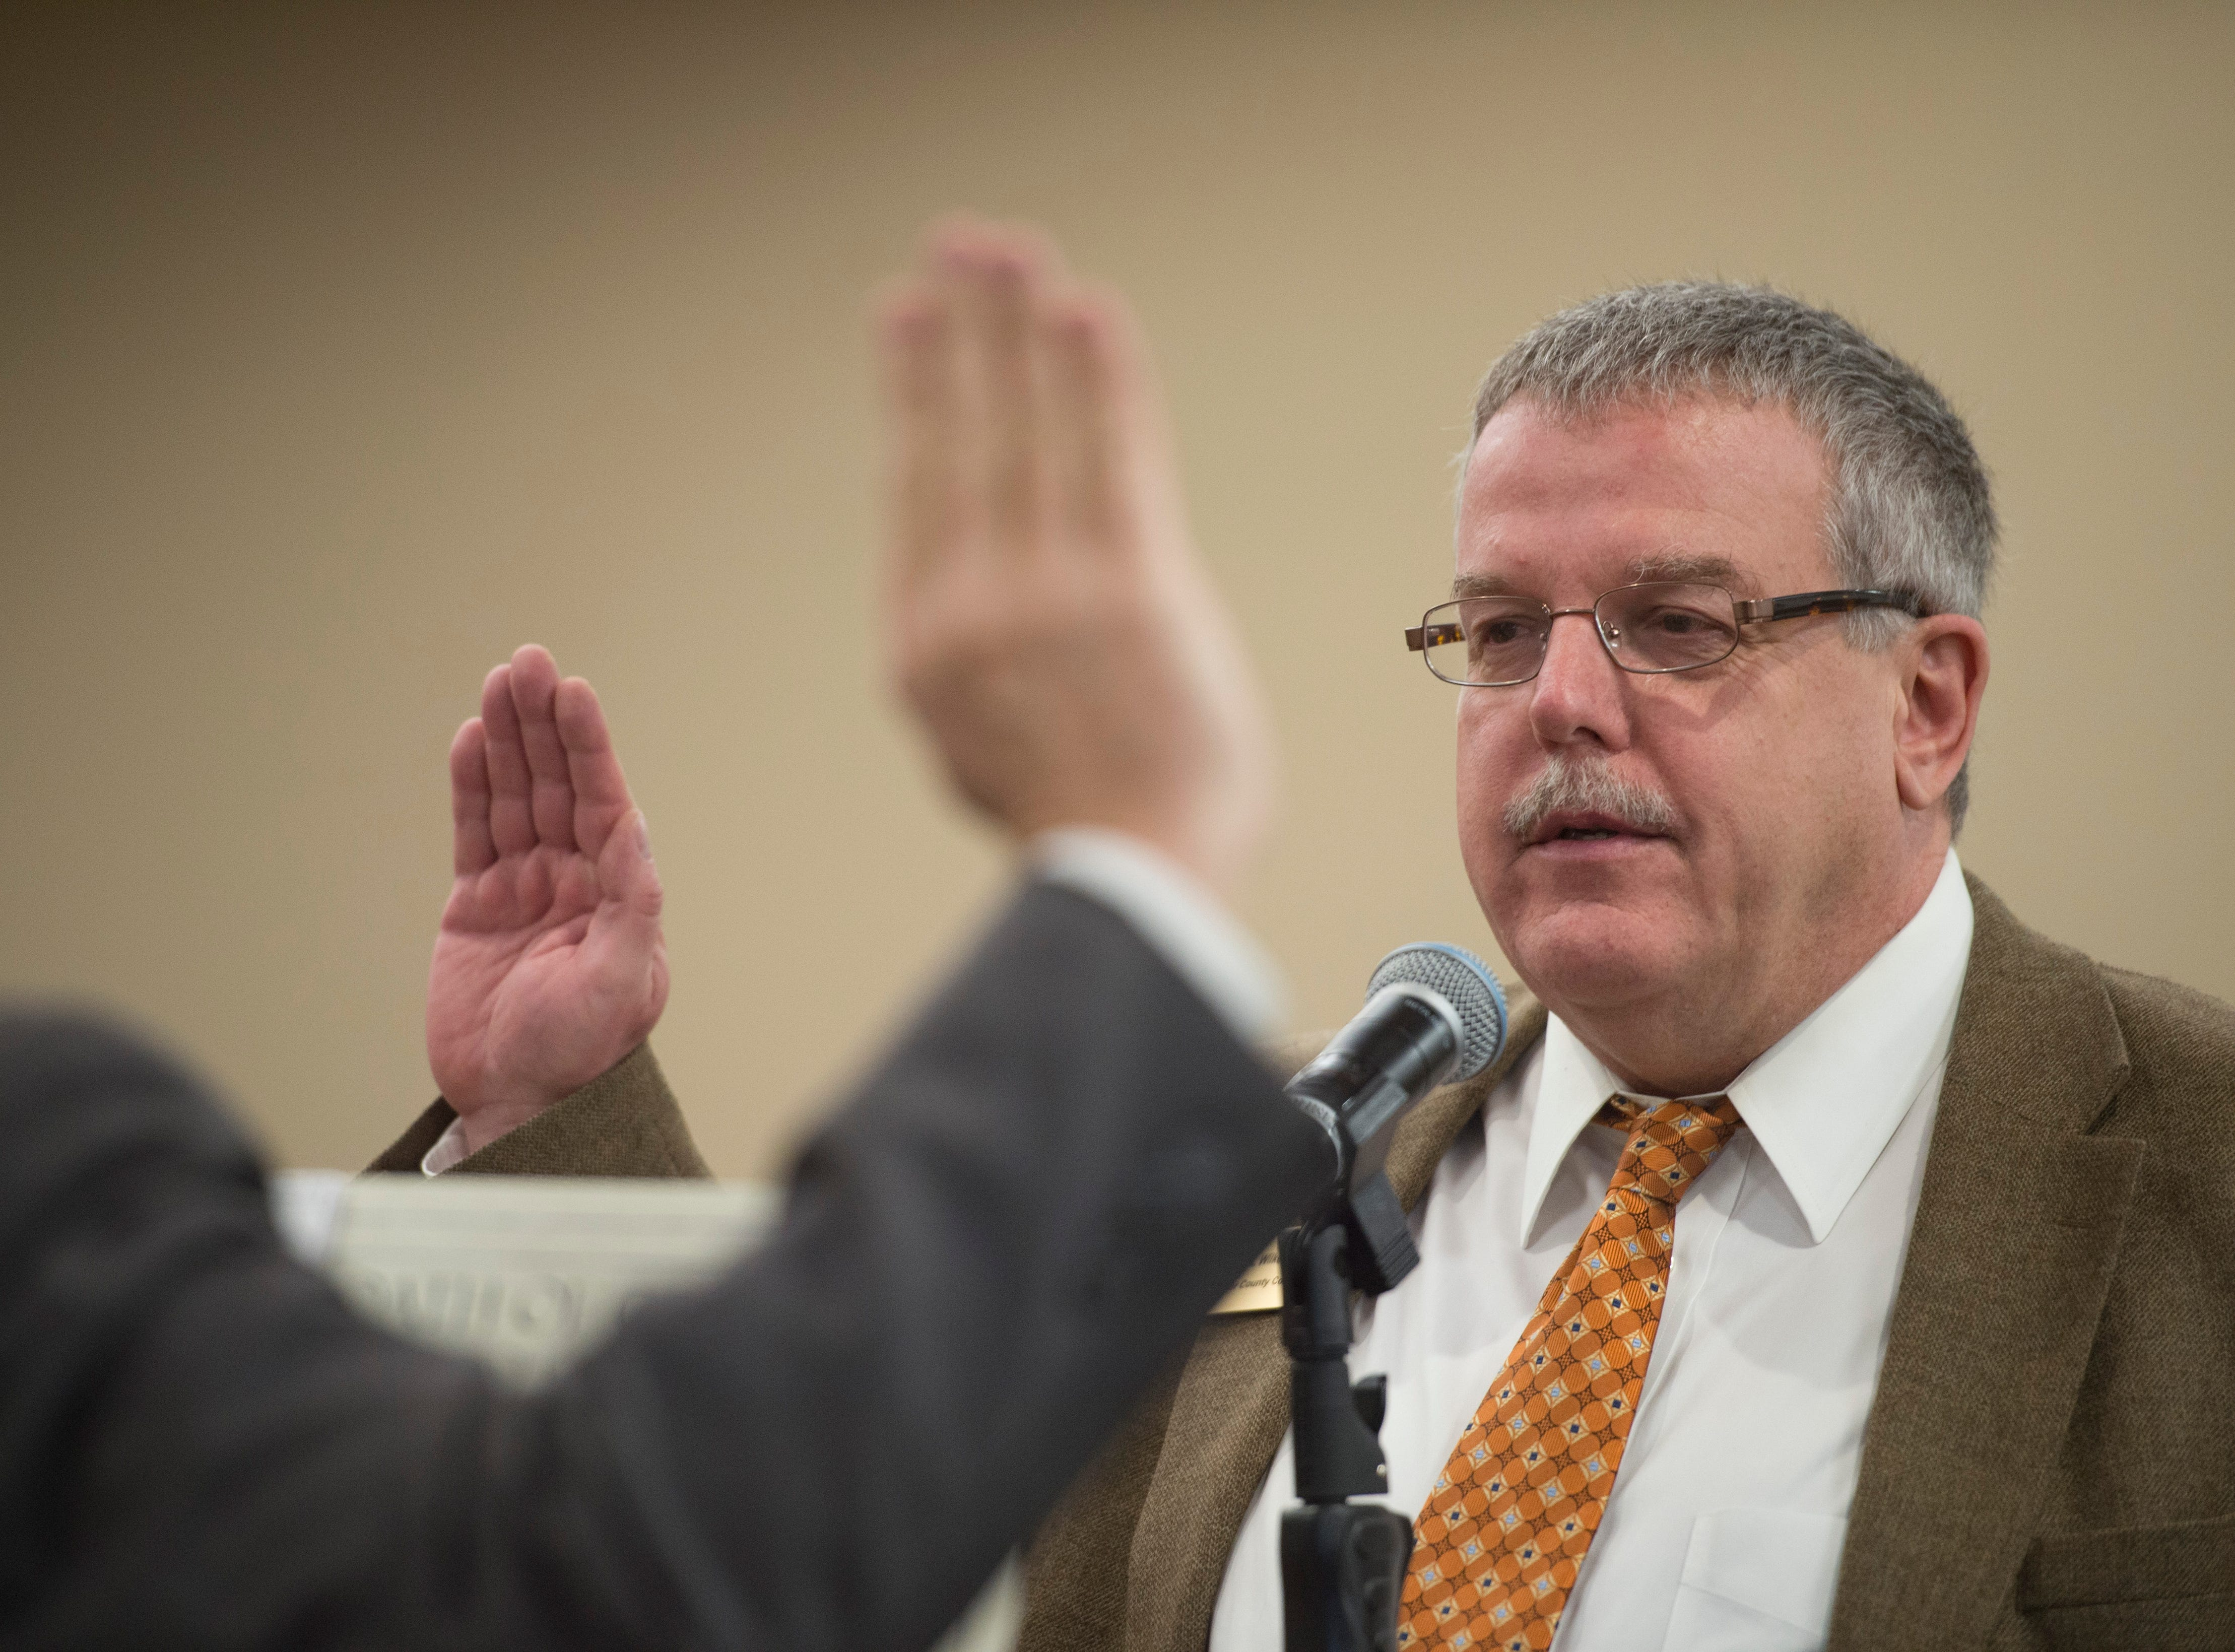 Larimer County Coroner James Wilkerson is sworn in for another term at the Larimer County Courthouse on Tuesday, January 8, 2019.